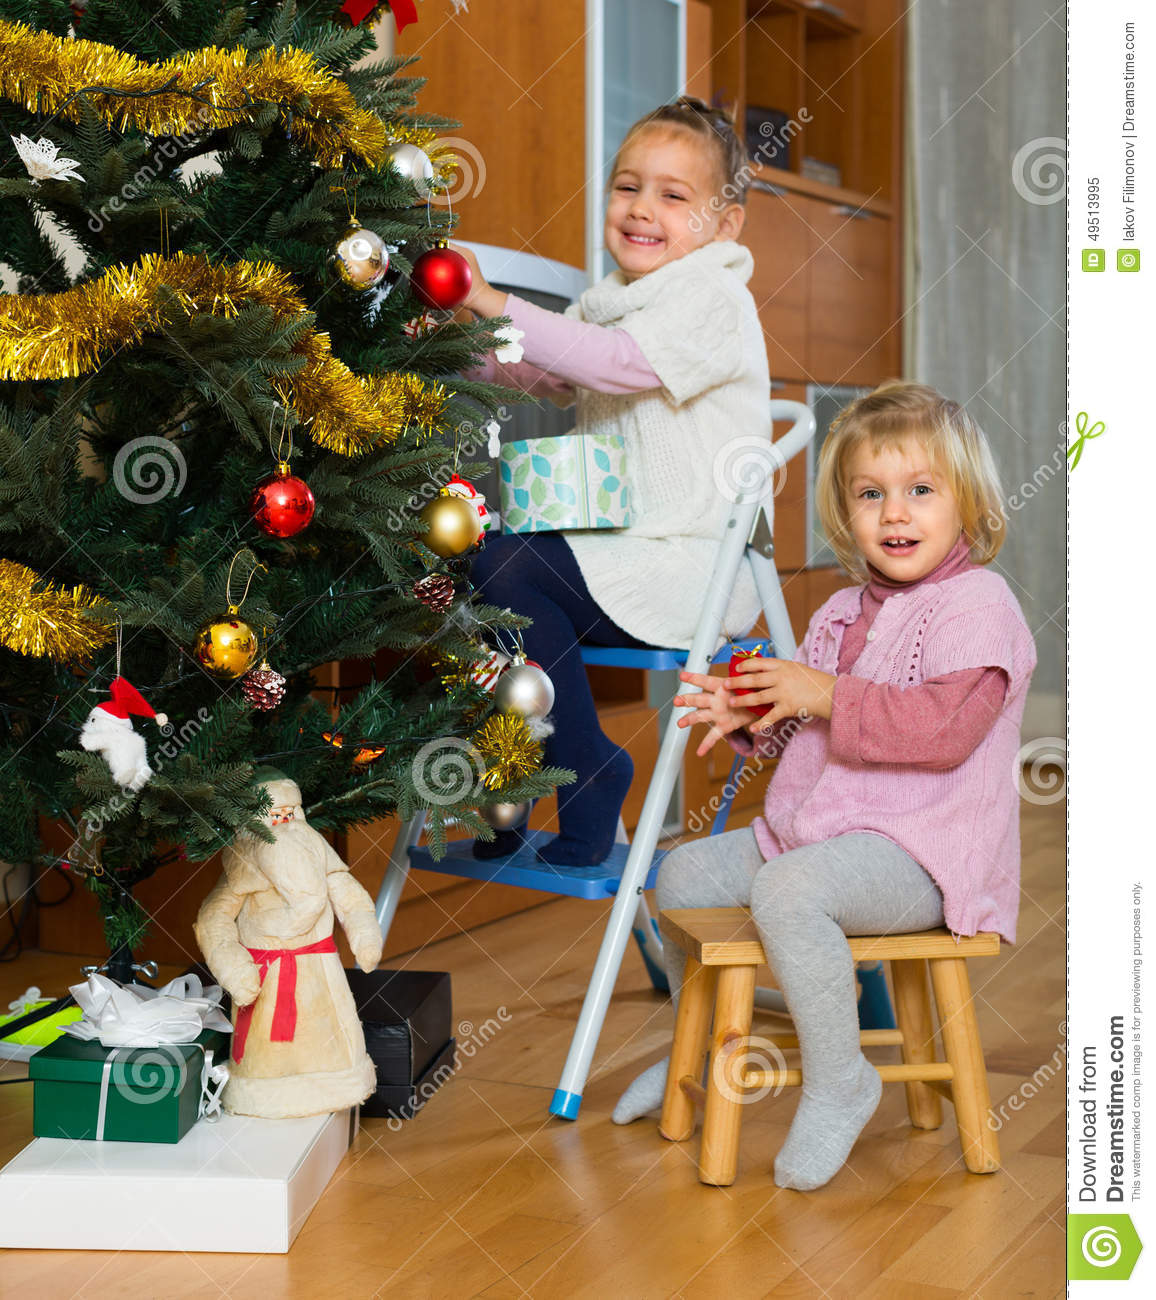 Little Girl Christmas Tree: Two Little Girls Decorating Christmas Tree Stock Photo